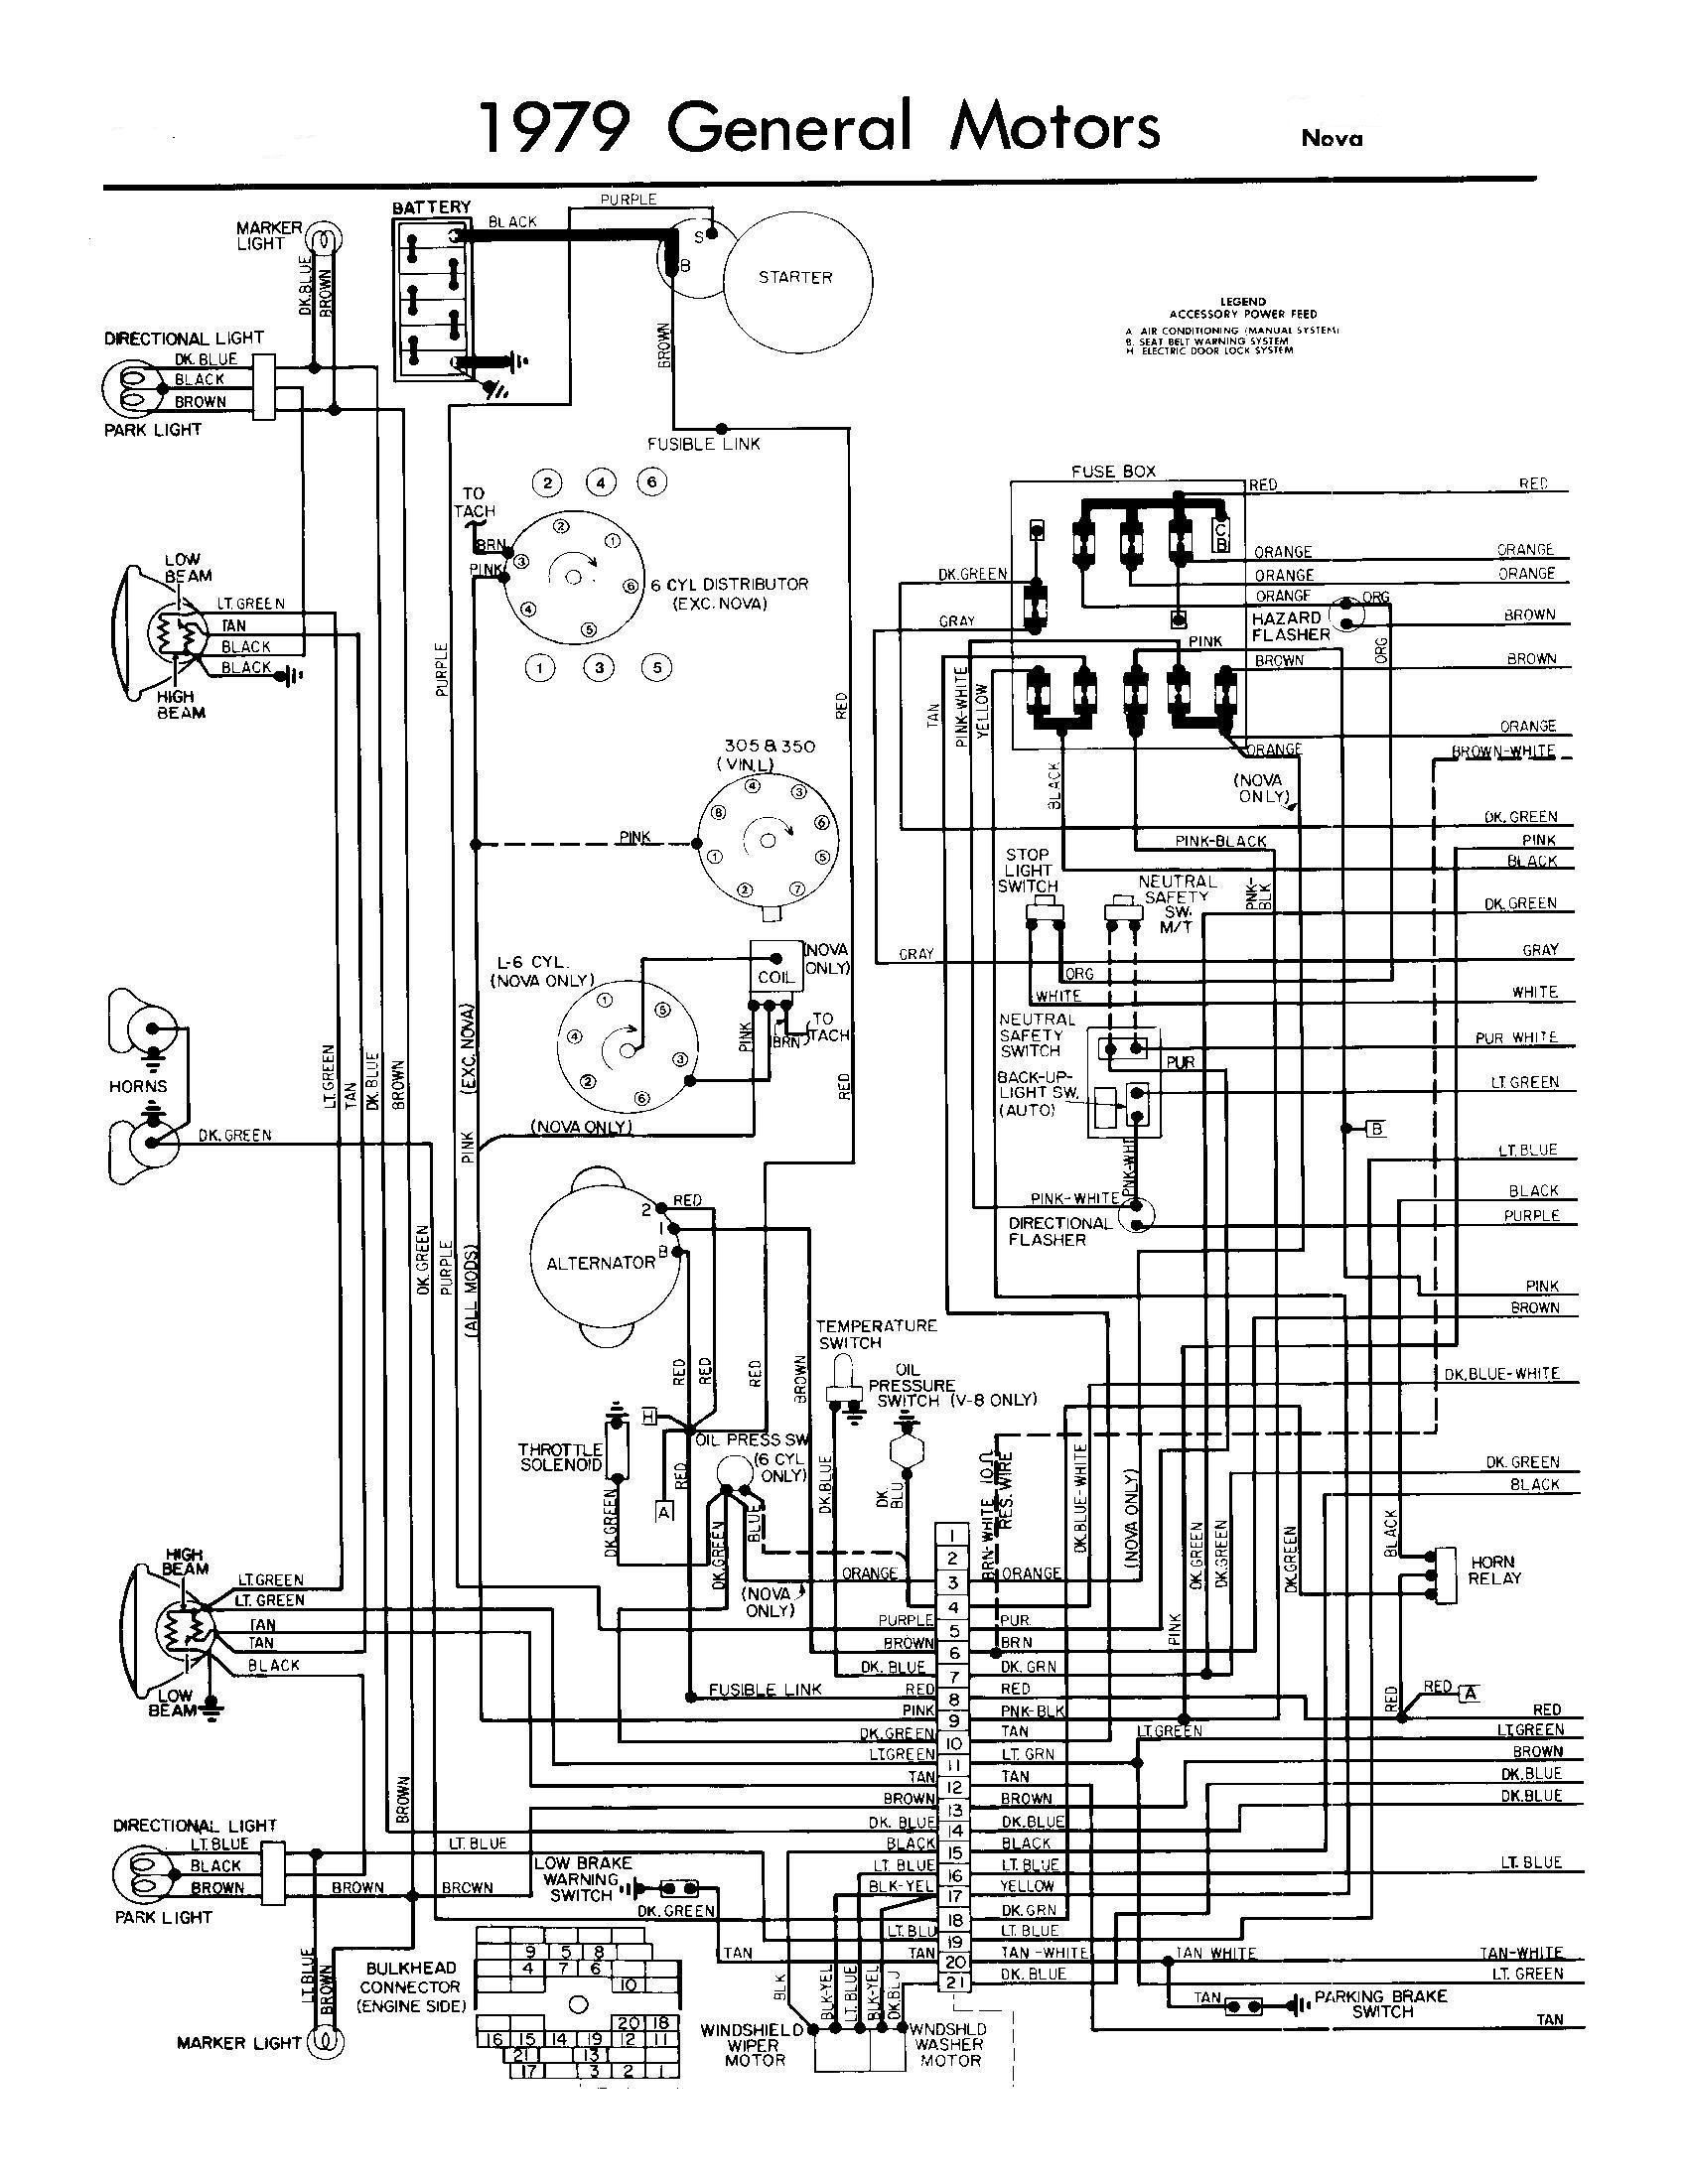 in automotive wiring chevrolet tagged chevrolet circuit diagrams rh onzegroup co CJ5 Wiring-Diagram CJ5 Wiring-Diagram